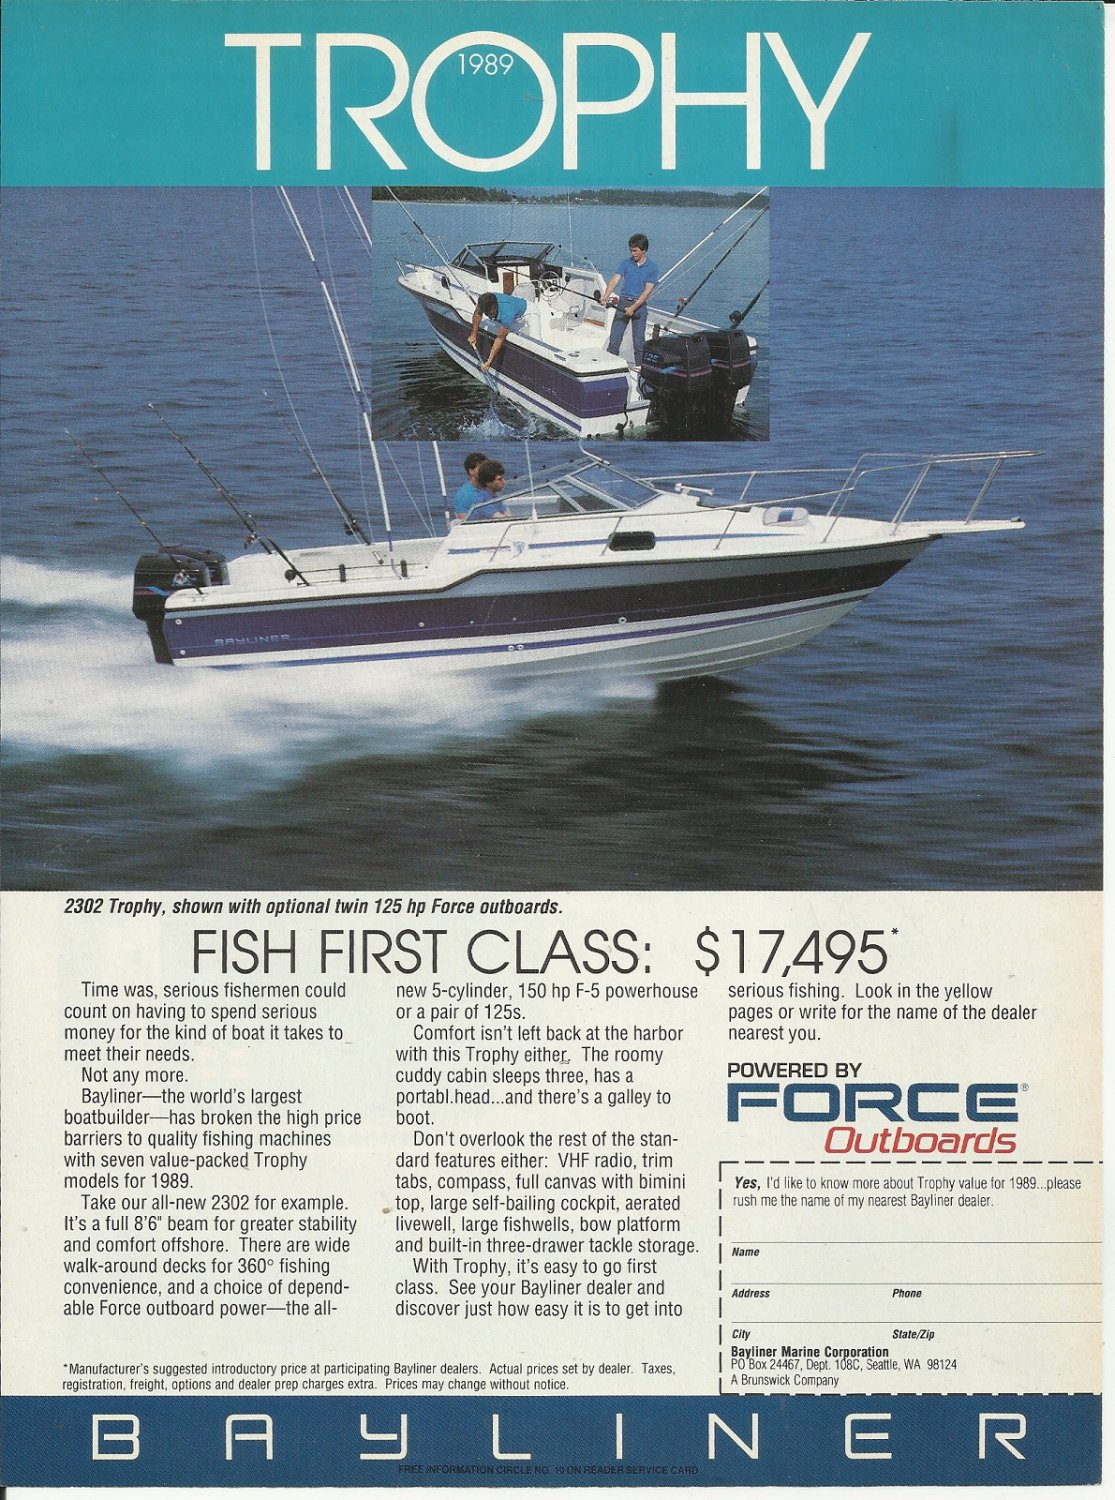 1989 Bayliner Marine Corp Color Ad- The 2302 Trophy